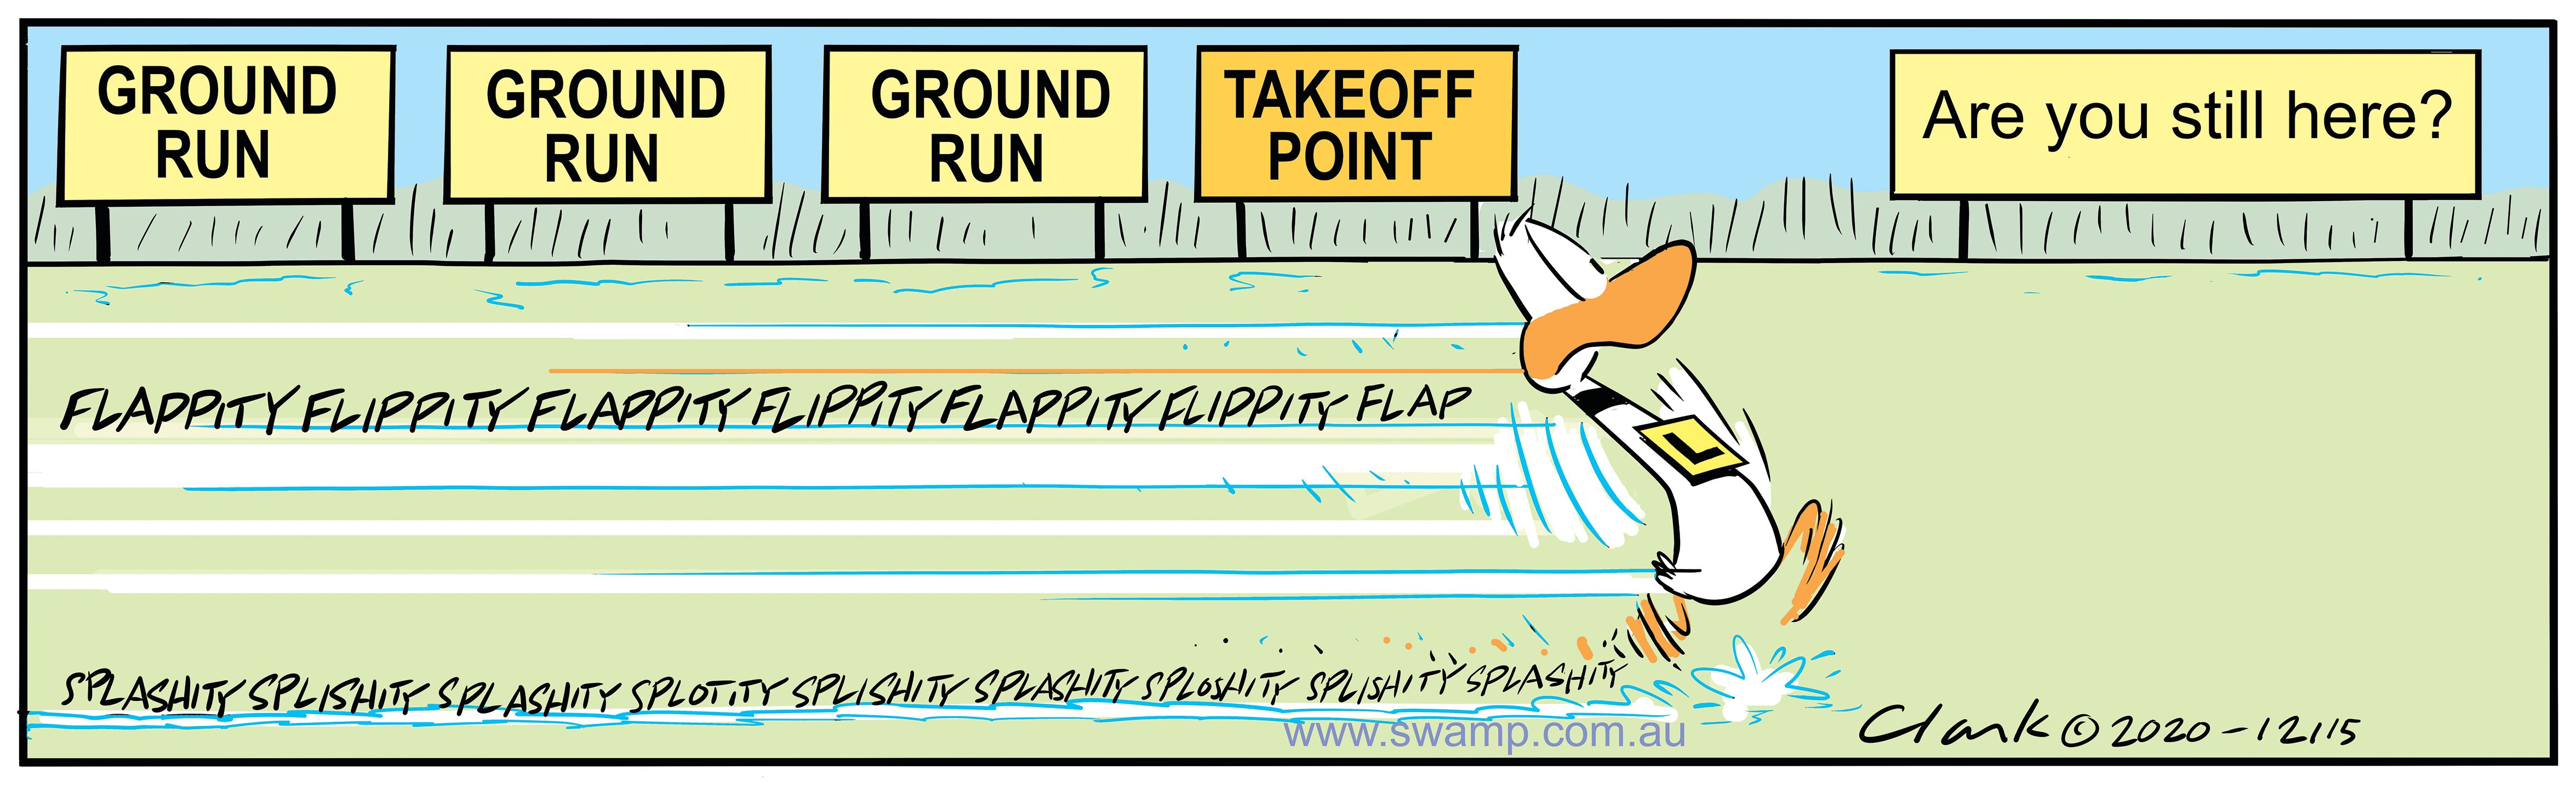 Ding Duck Take-off Point